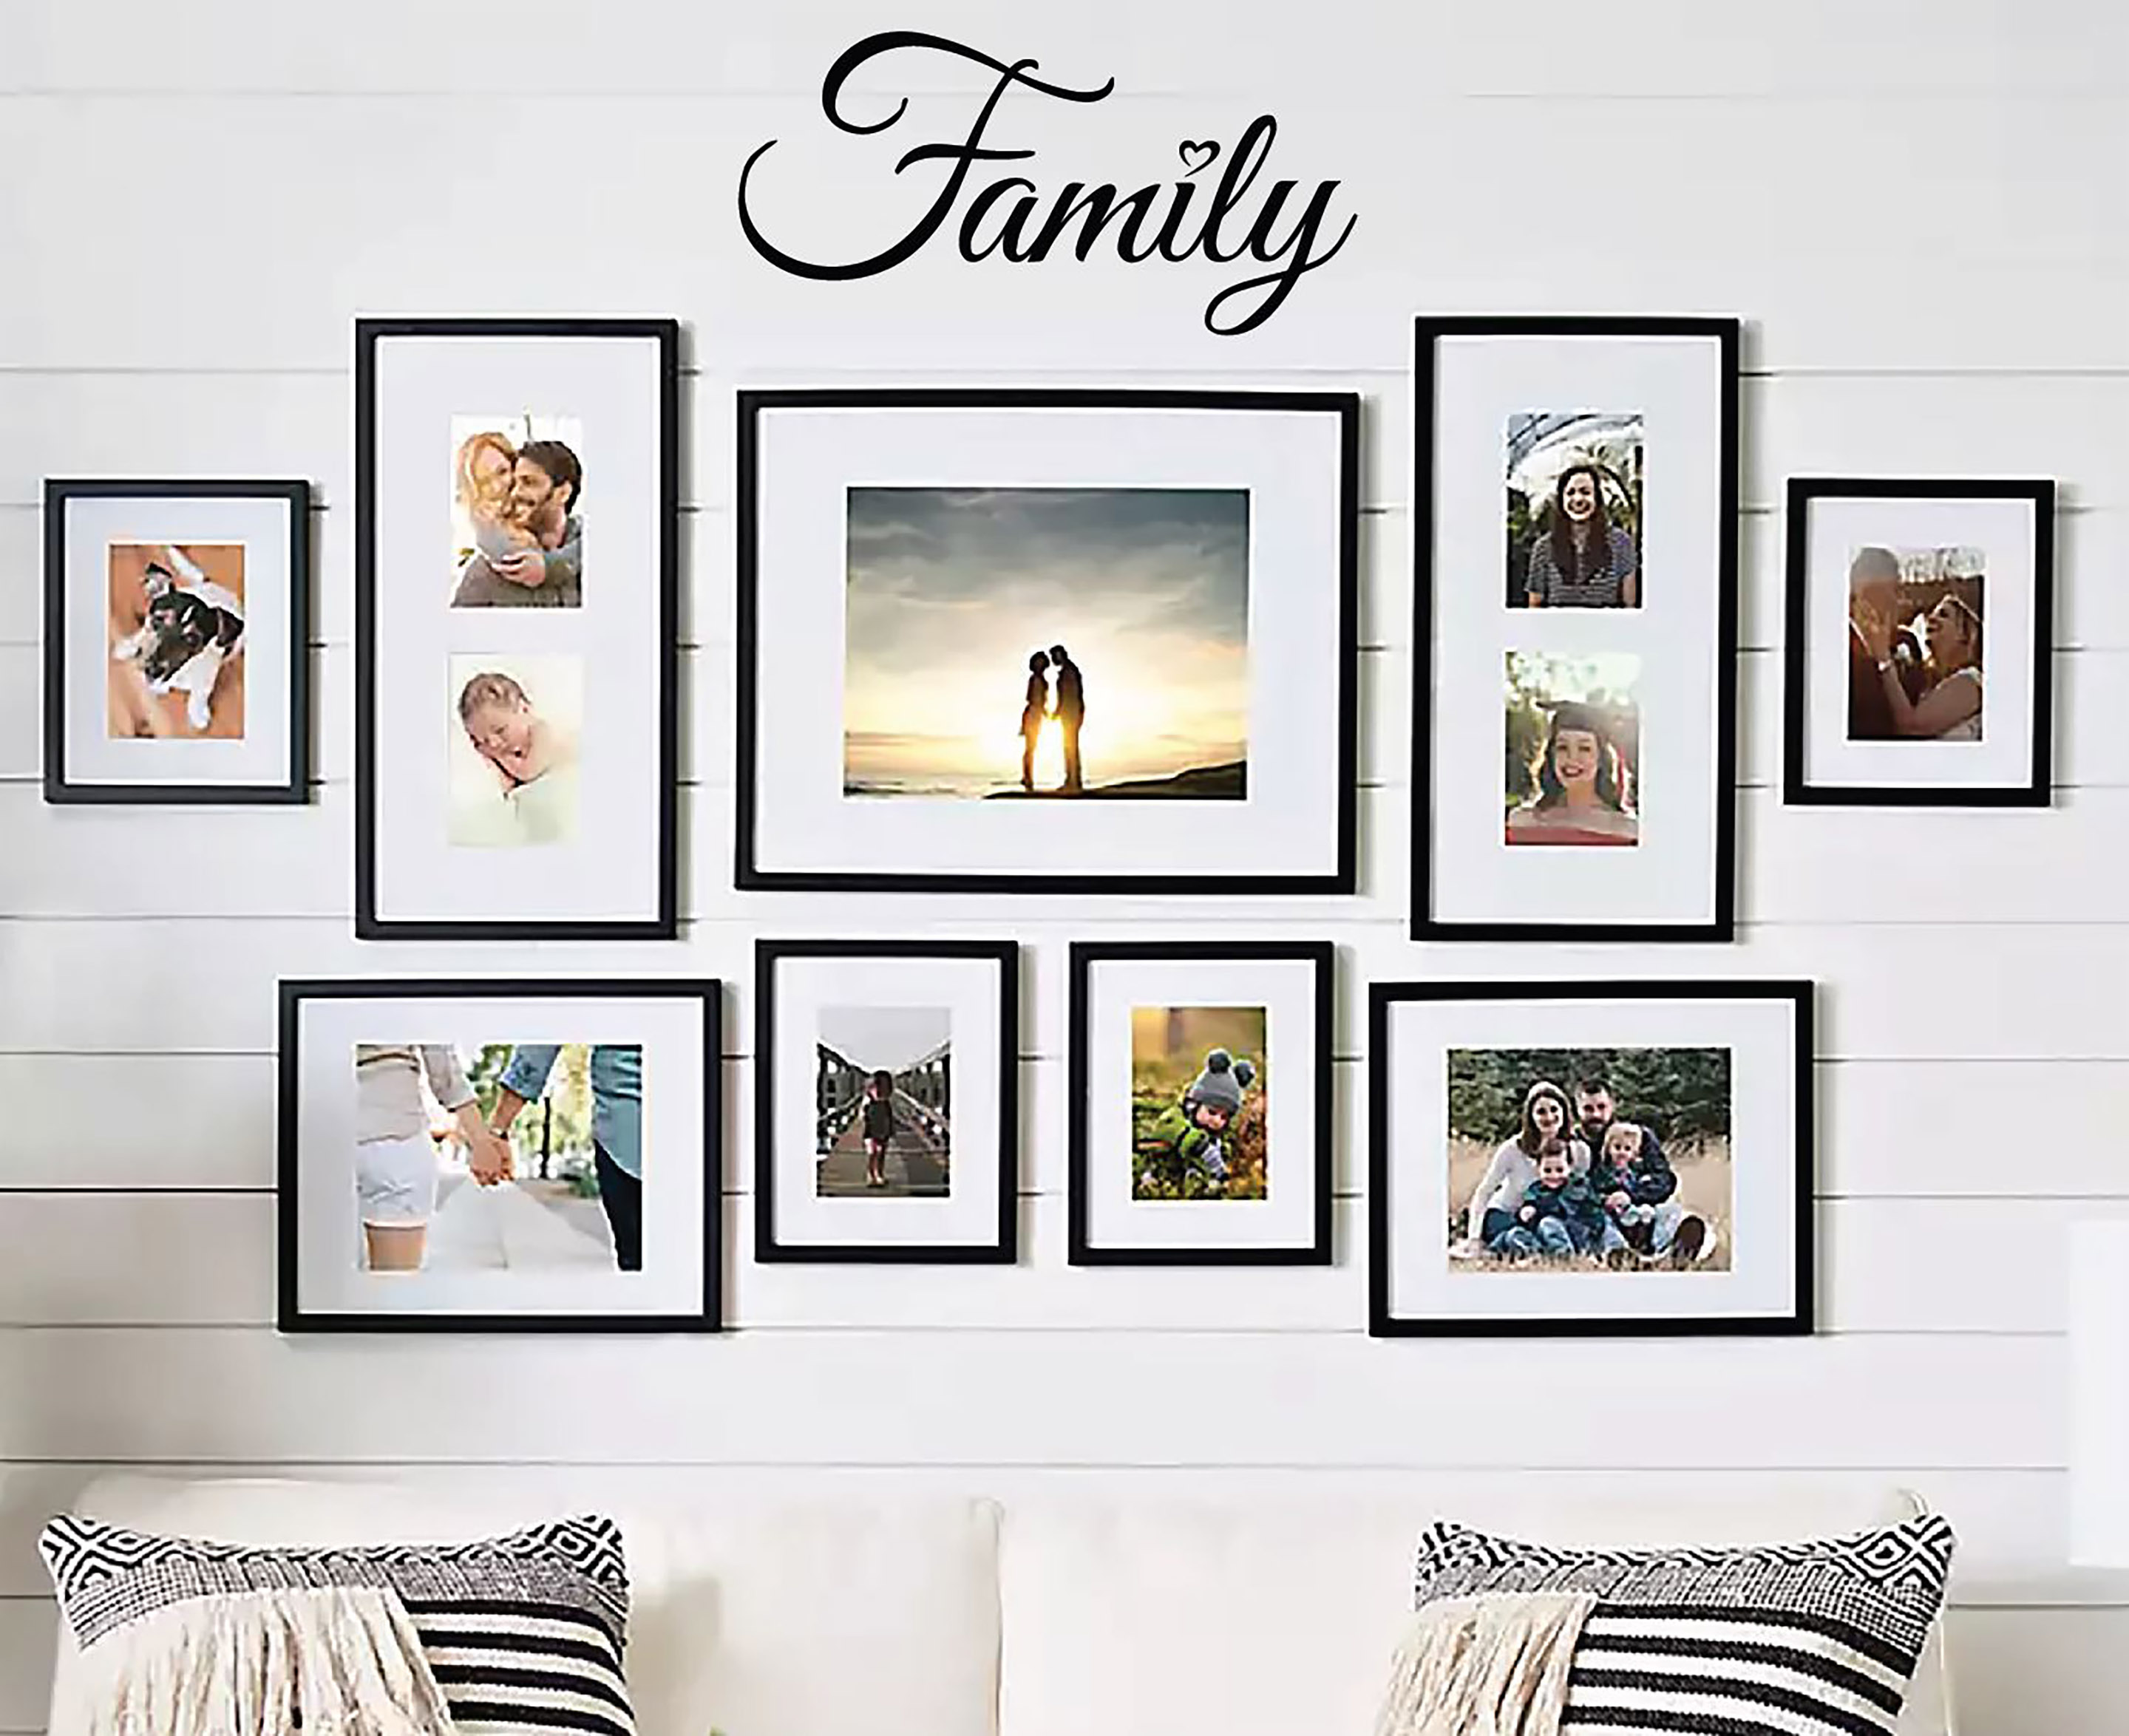 3072-family-wall-decal-picture-frame-wall.jpg